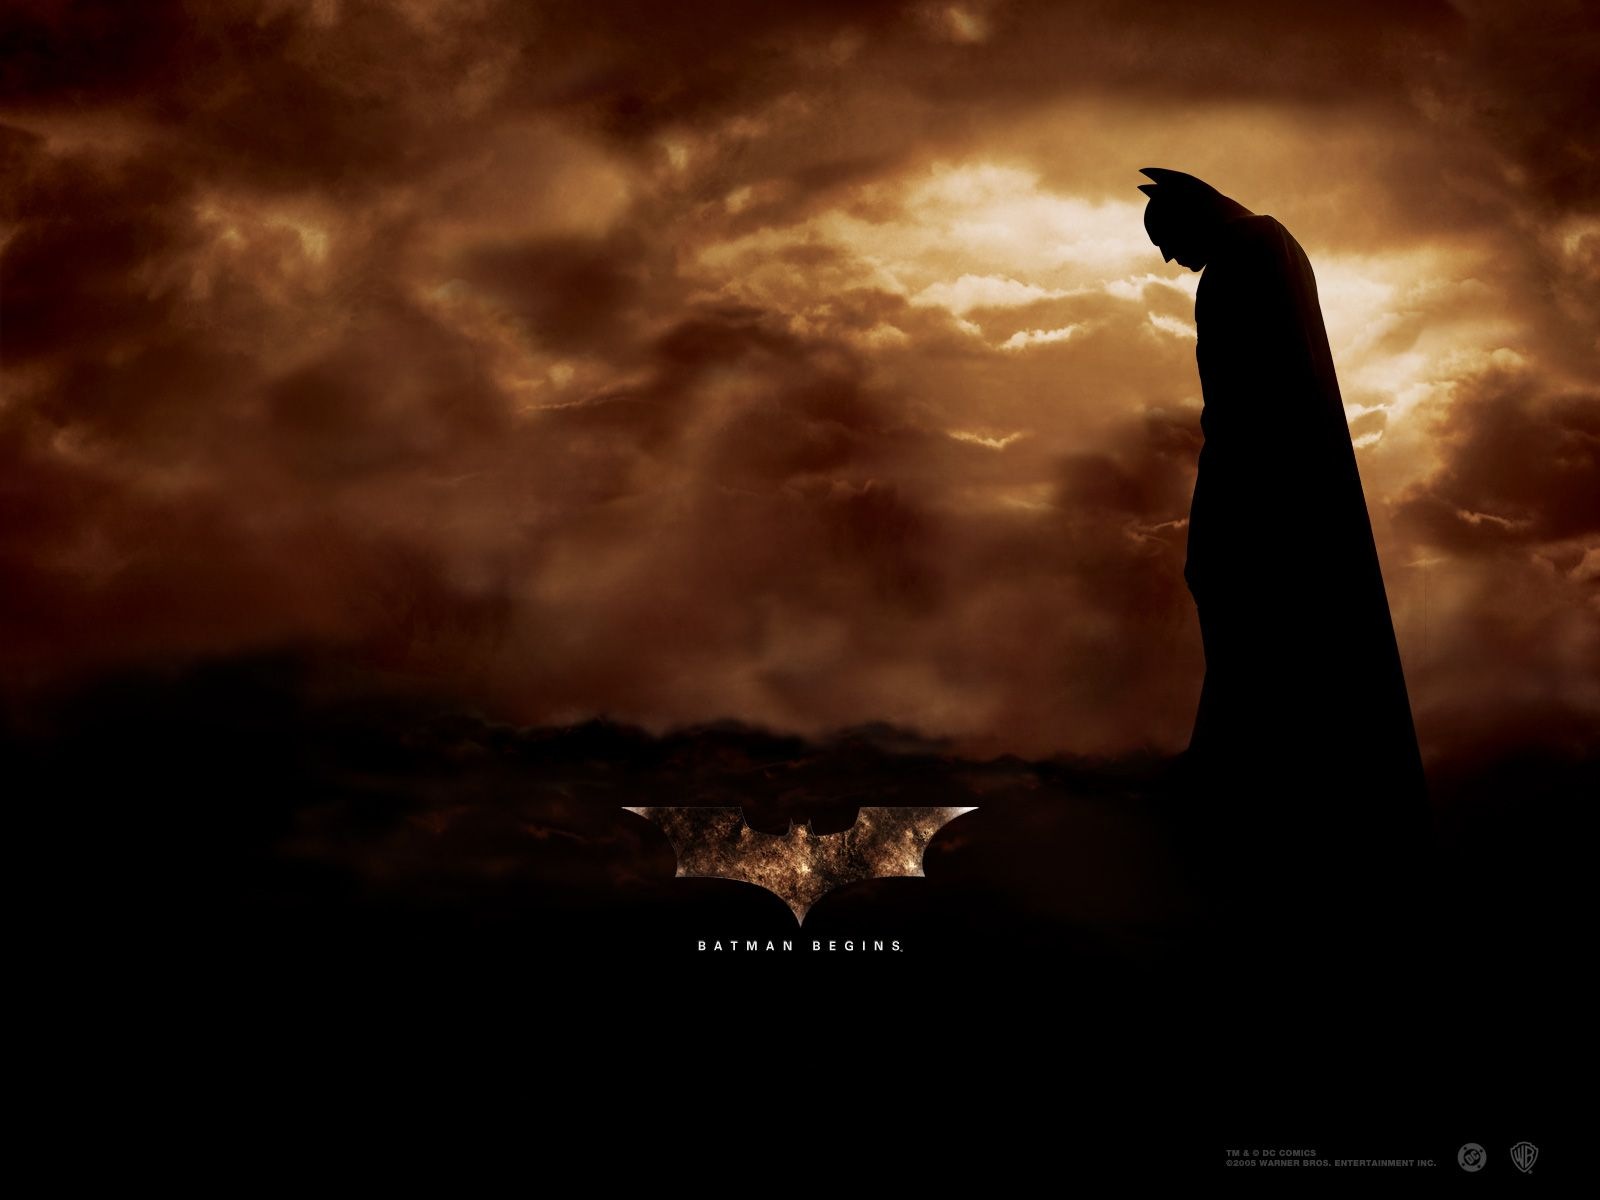 Batman Clouds Background Poster Wallpaper 1600x1200